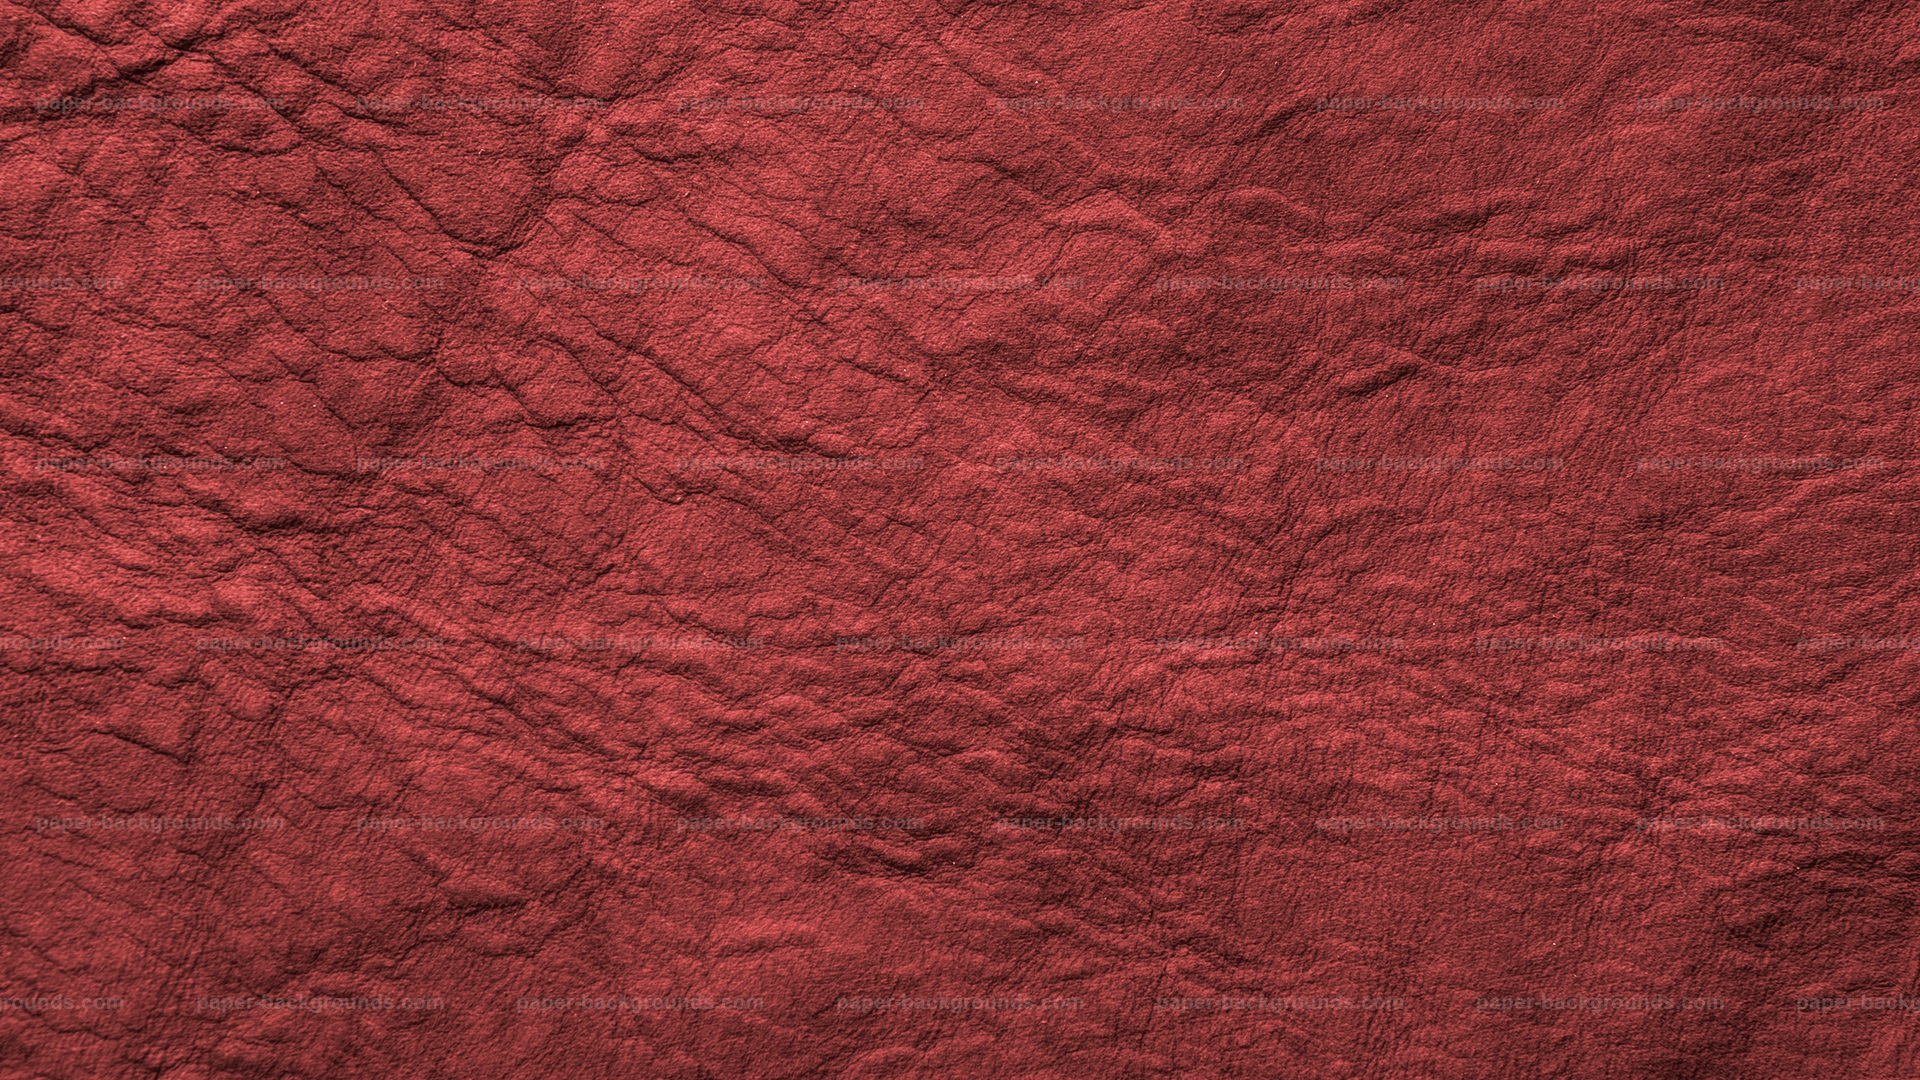 Red Wrinkled Antique Soft Leather Texture HD 1920 x 1080p